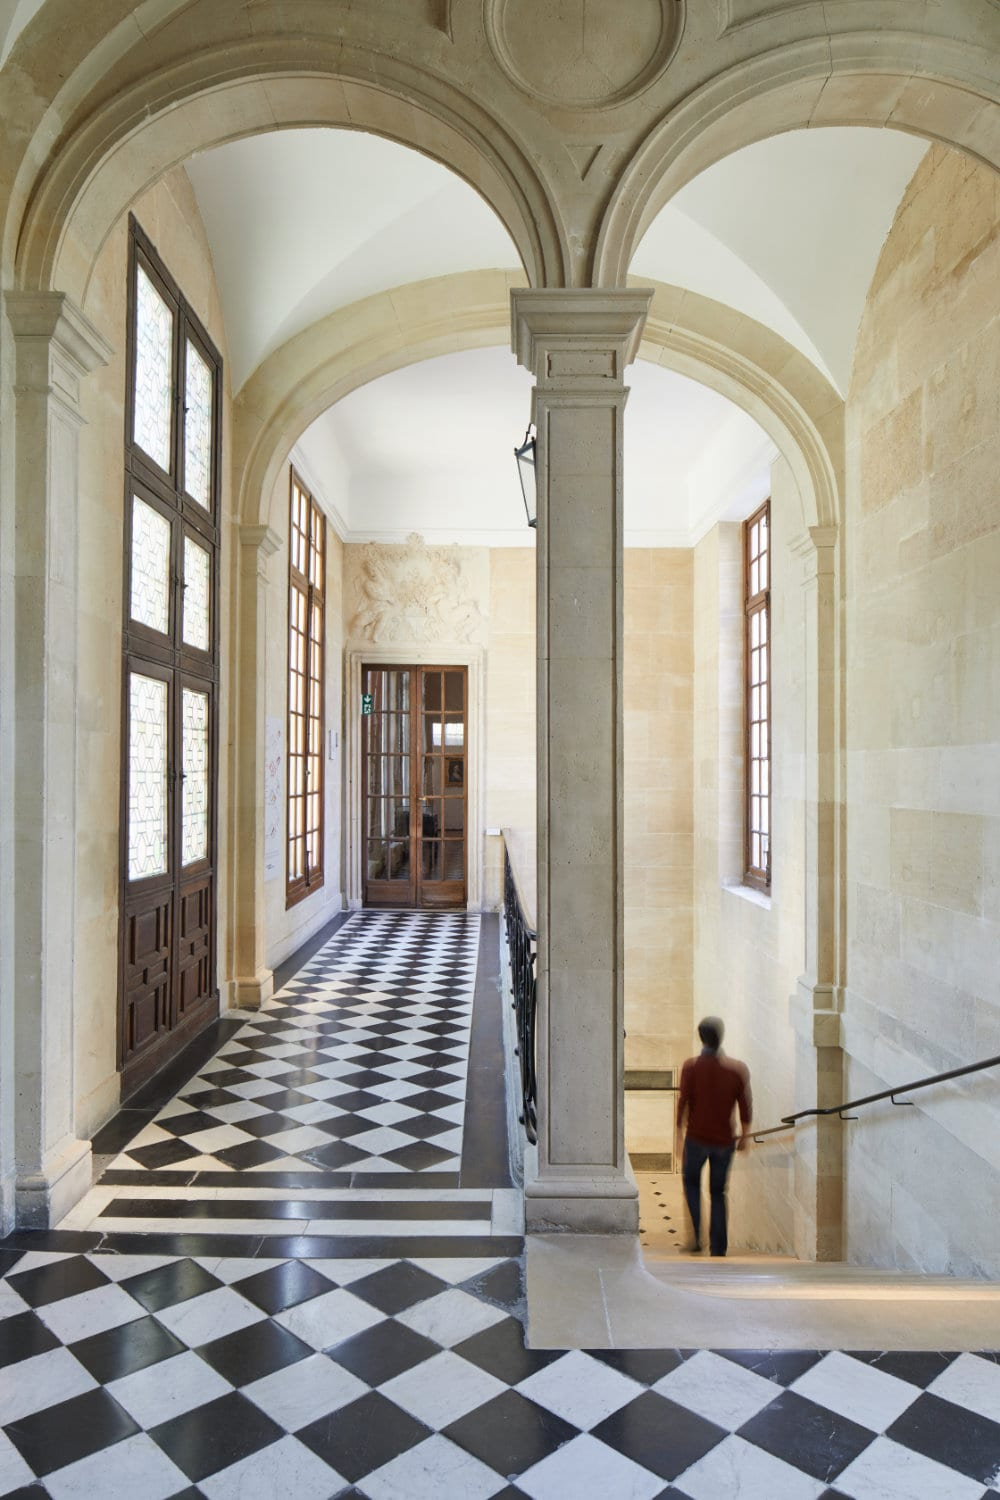 Snøhetta Adds a Touch of Novelty to the Historic musée Carnavalet in Paris